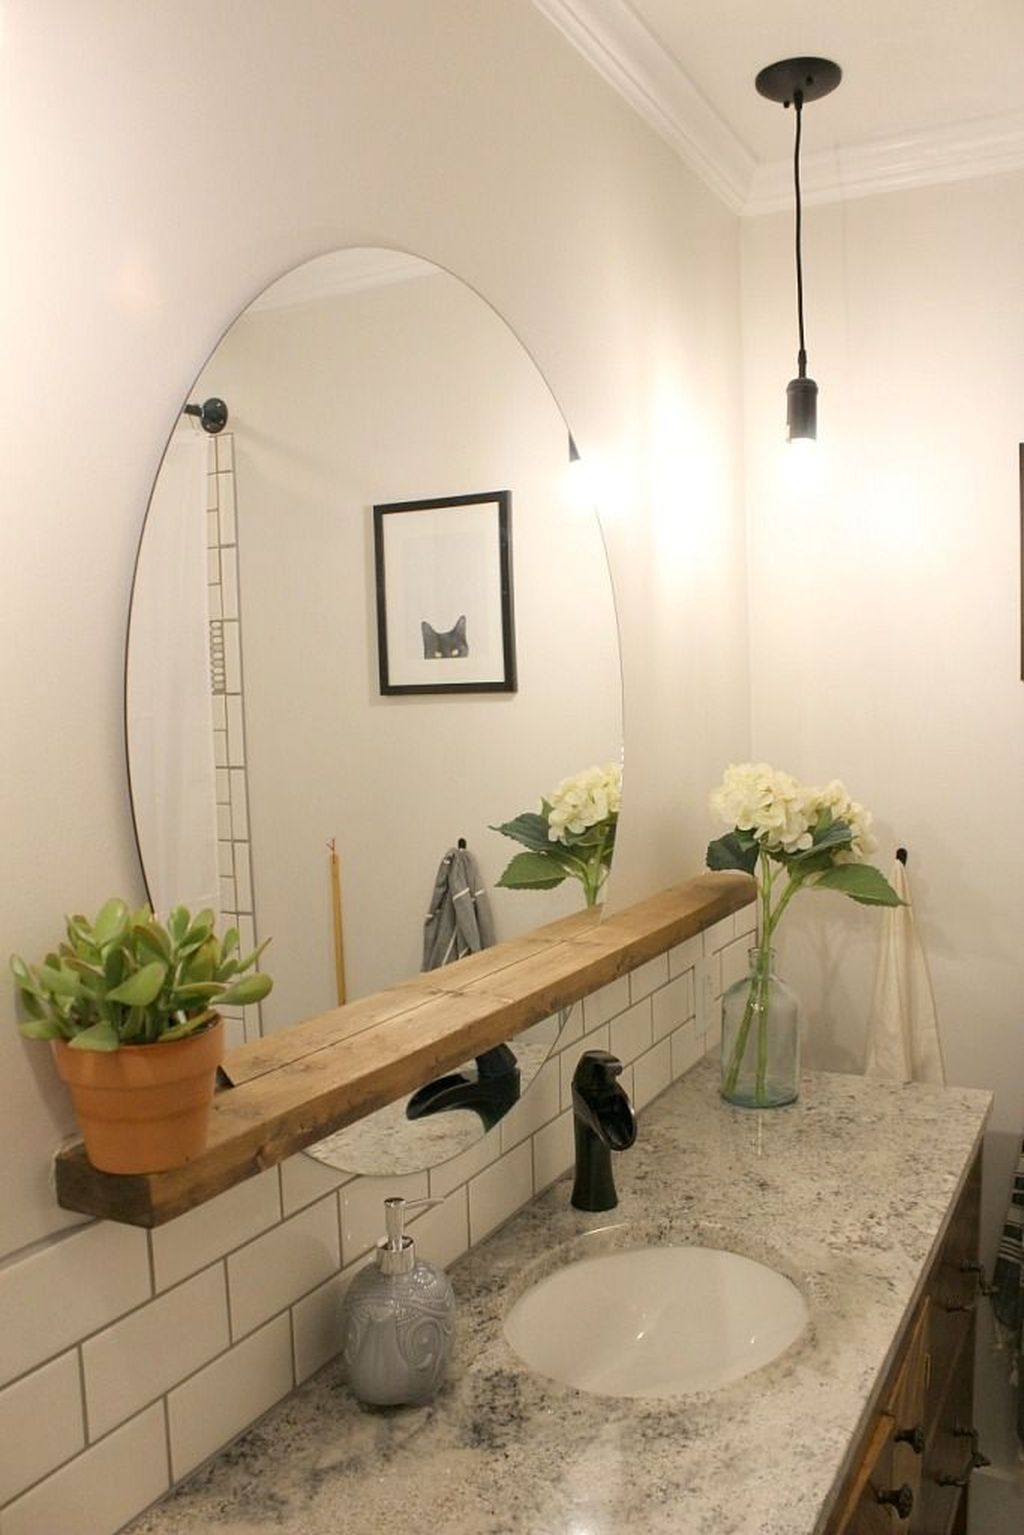 Stunning Bathroom Mirror Decor Ideas 13